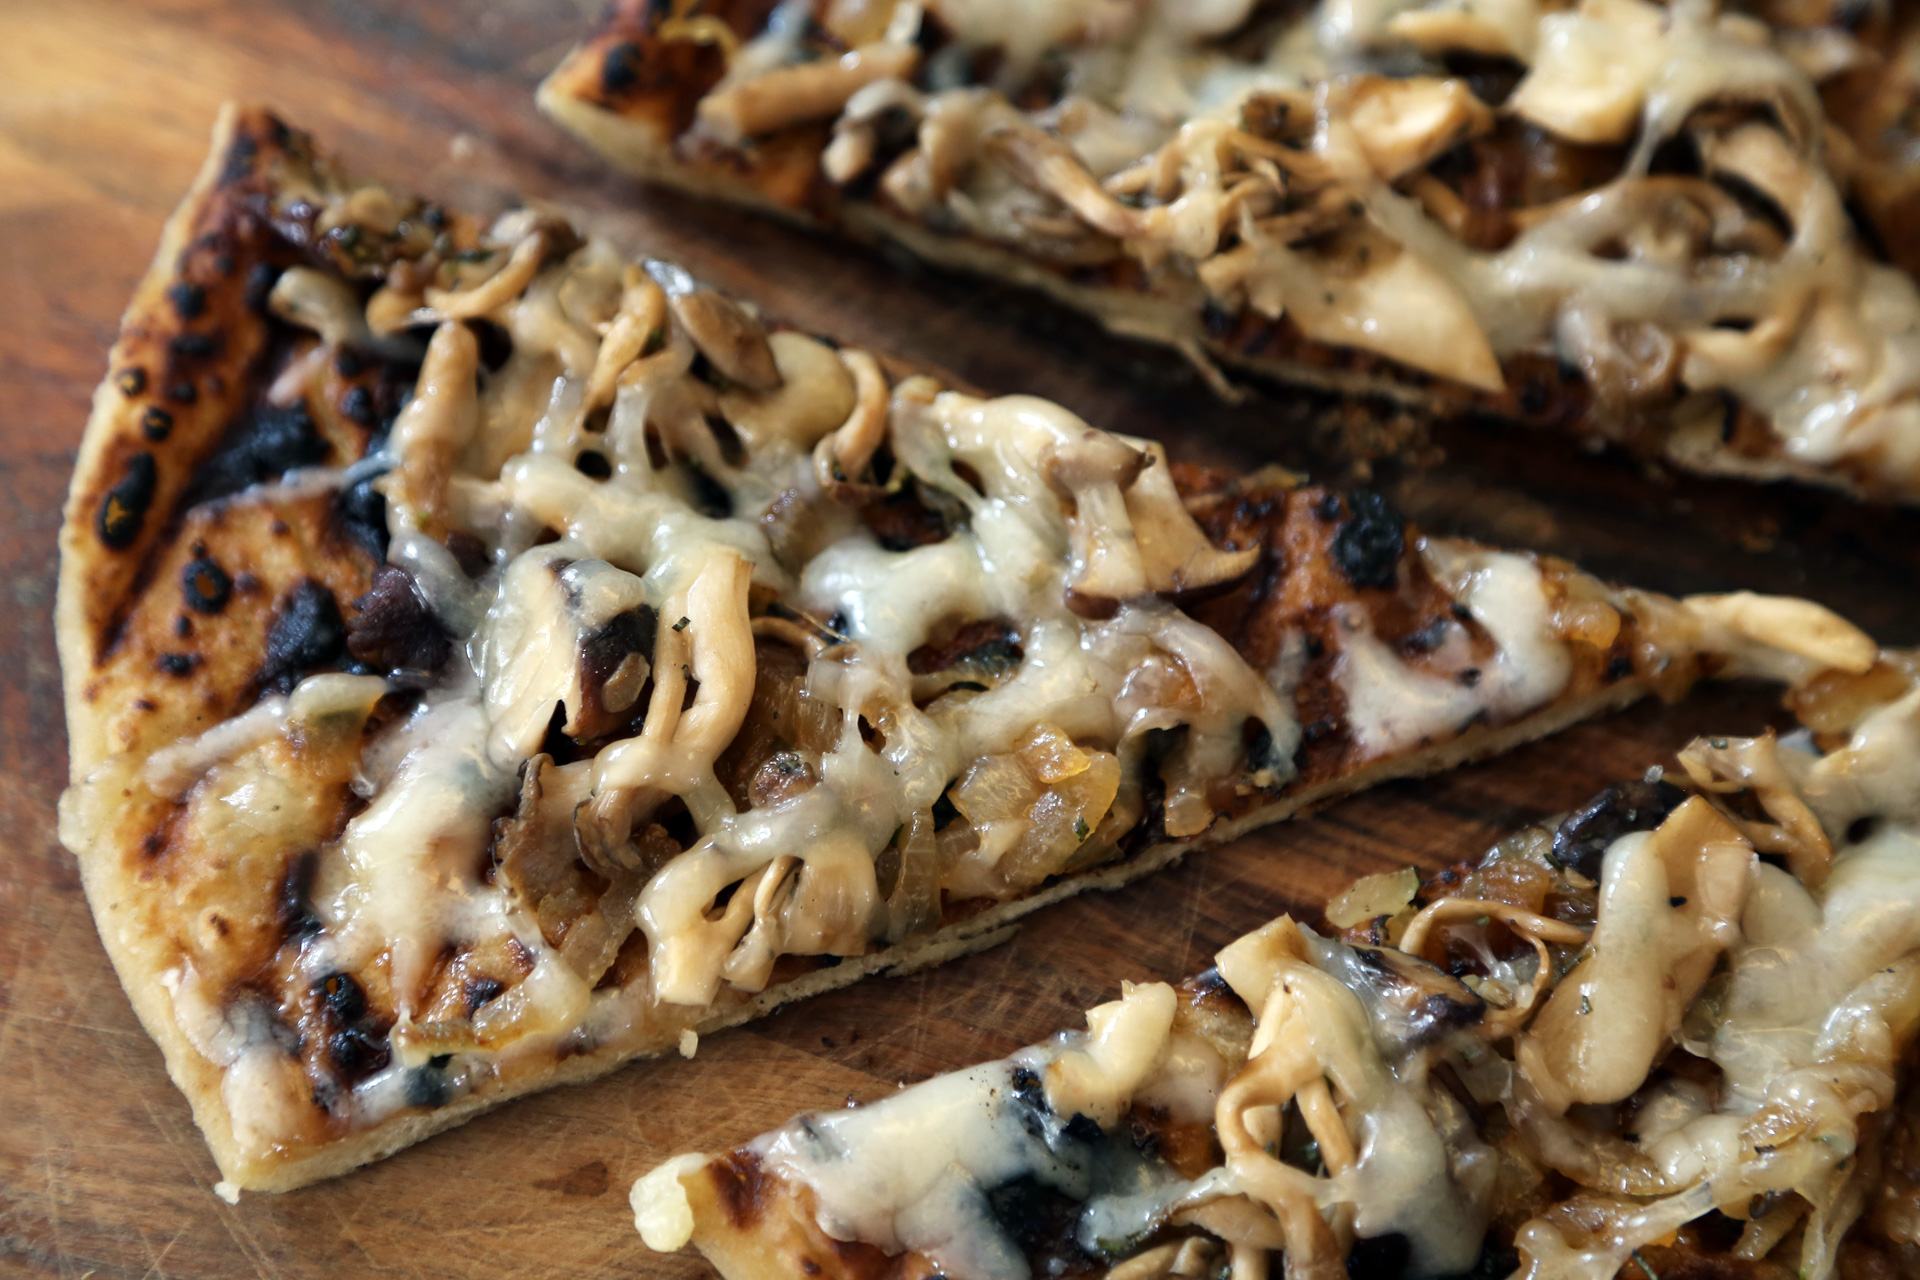 Grilled pizza with wild mushrooms, caramelized onions, and fontina